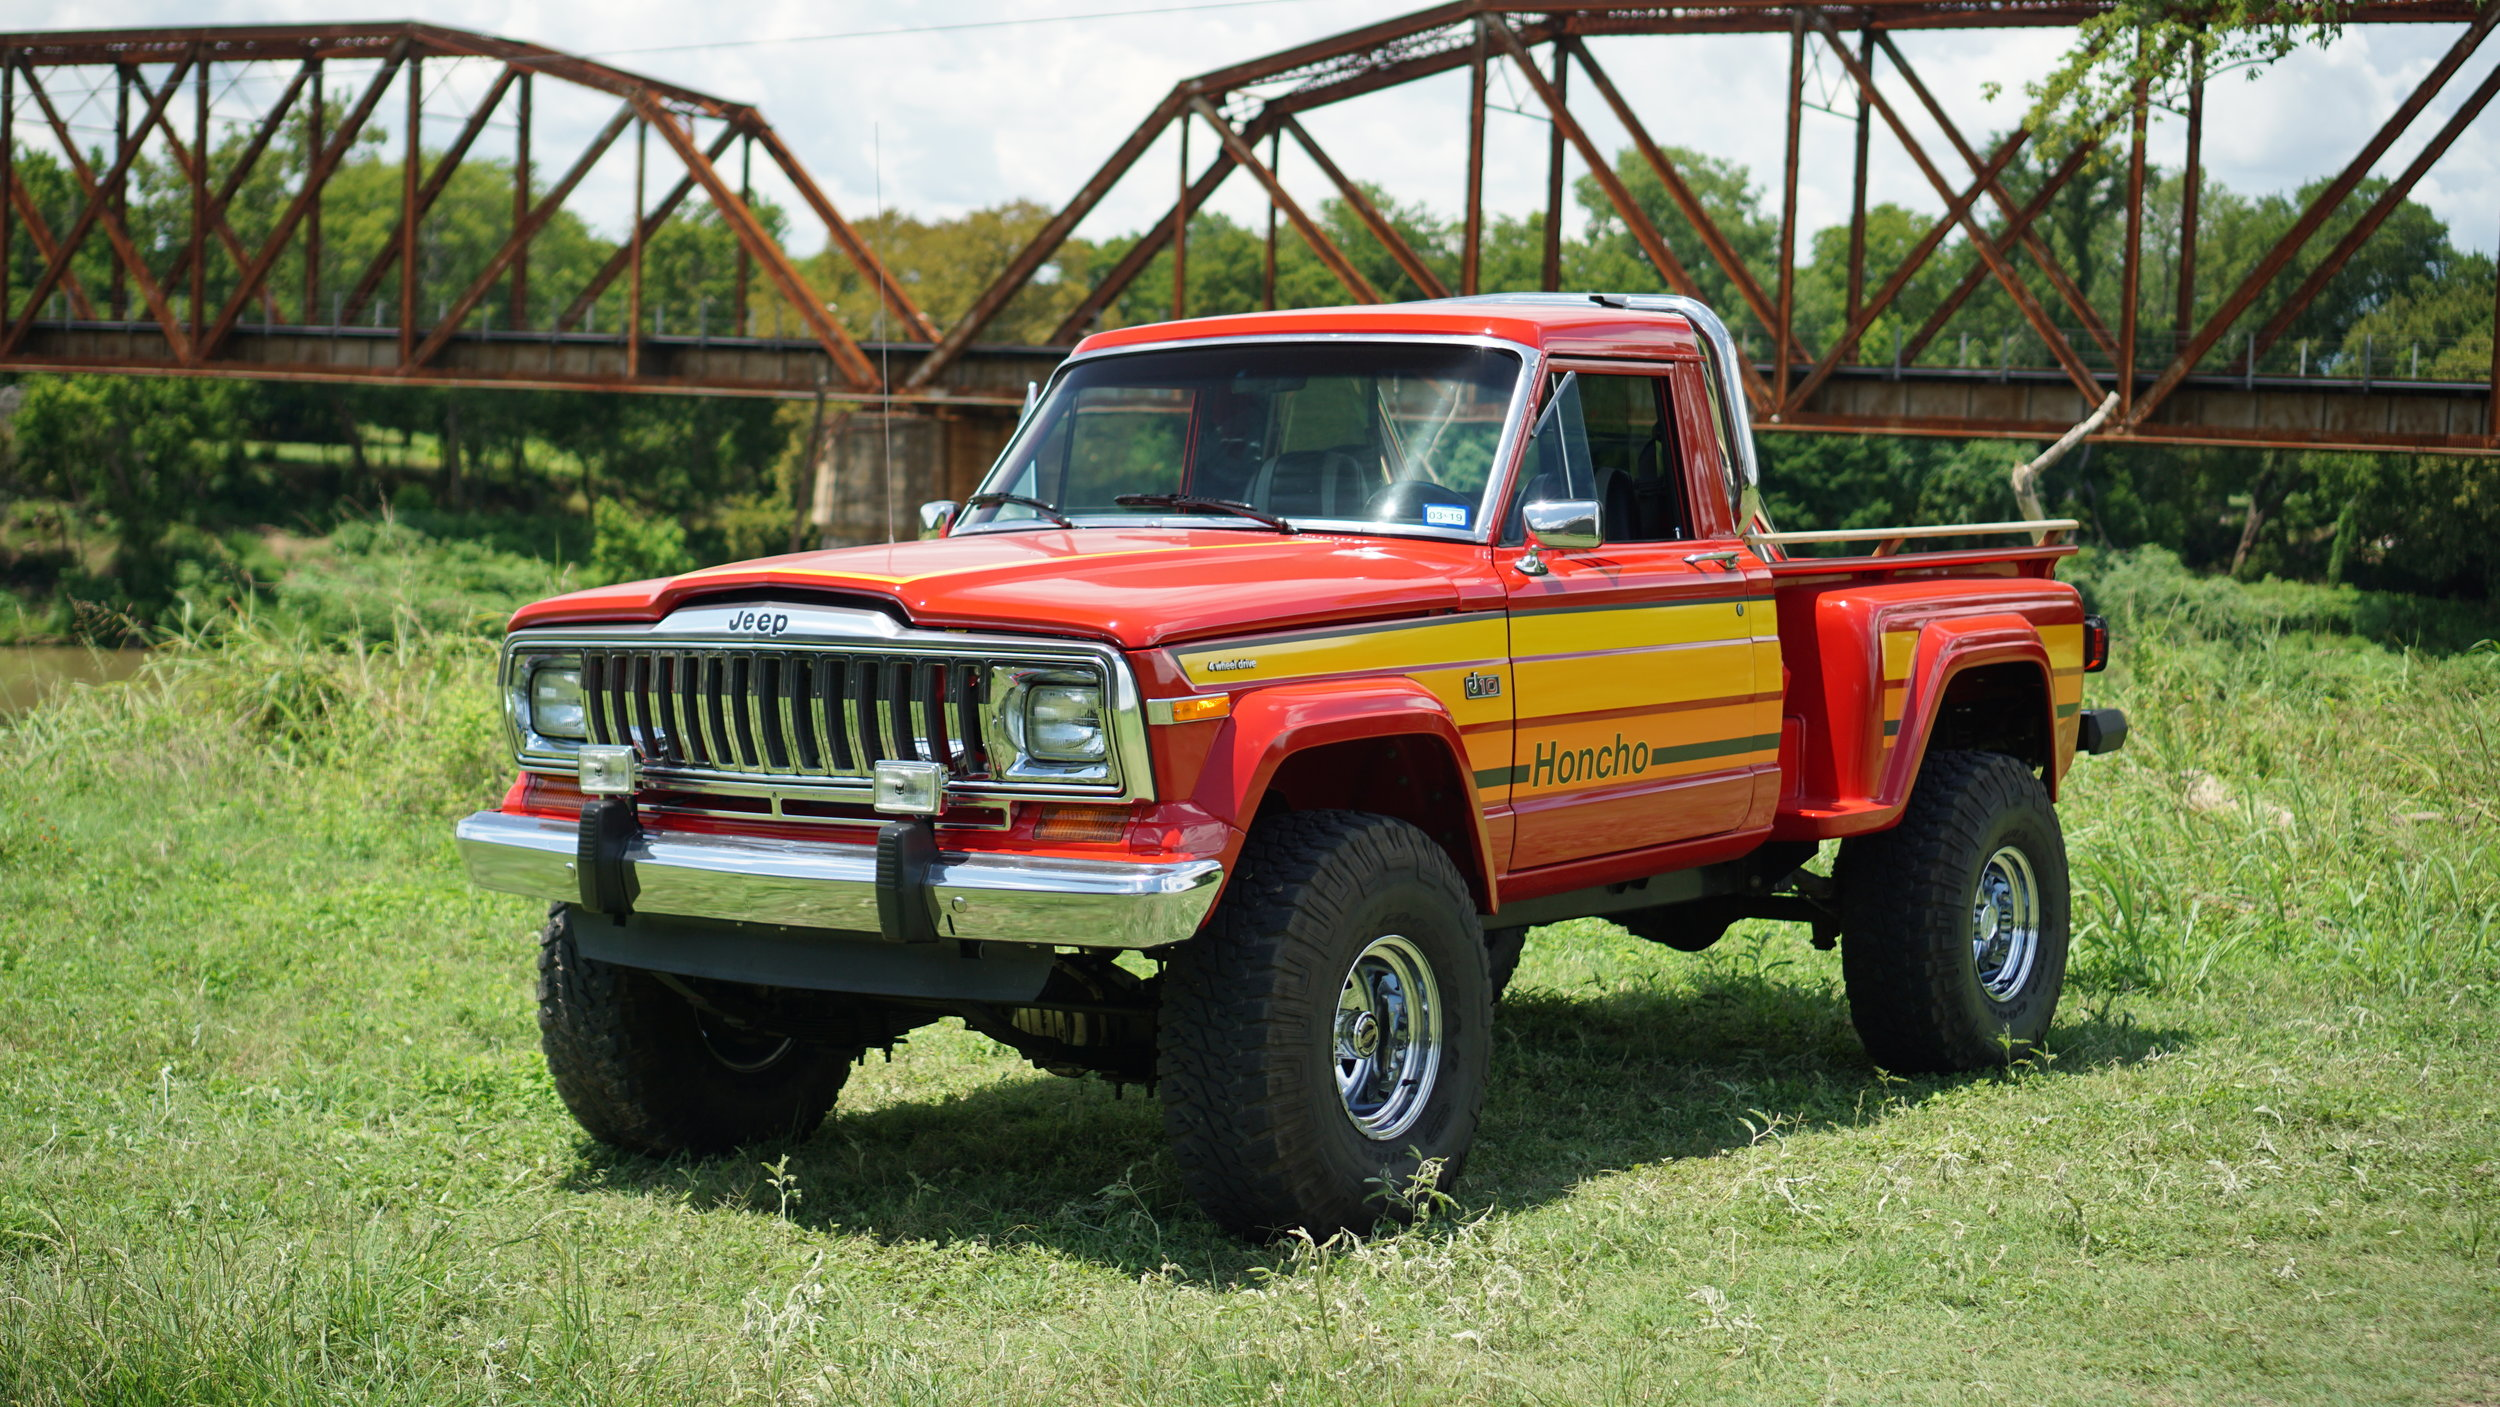 1981 jeep j10 pick up [ 2500 x 1407 Pixel ]